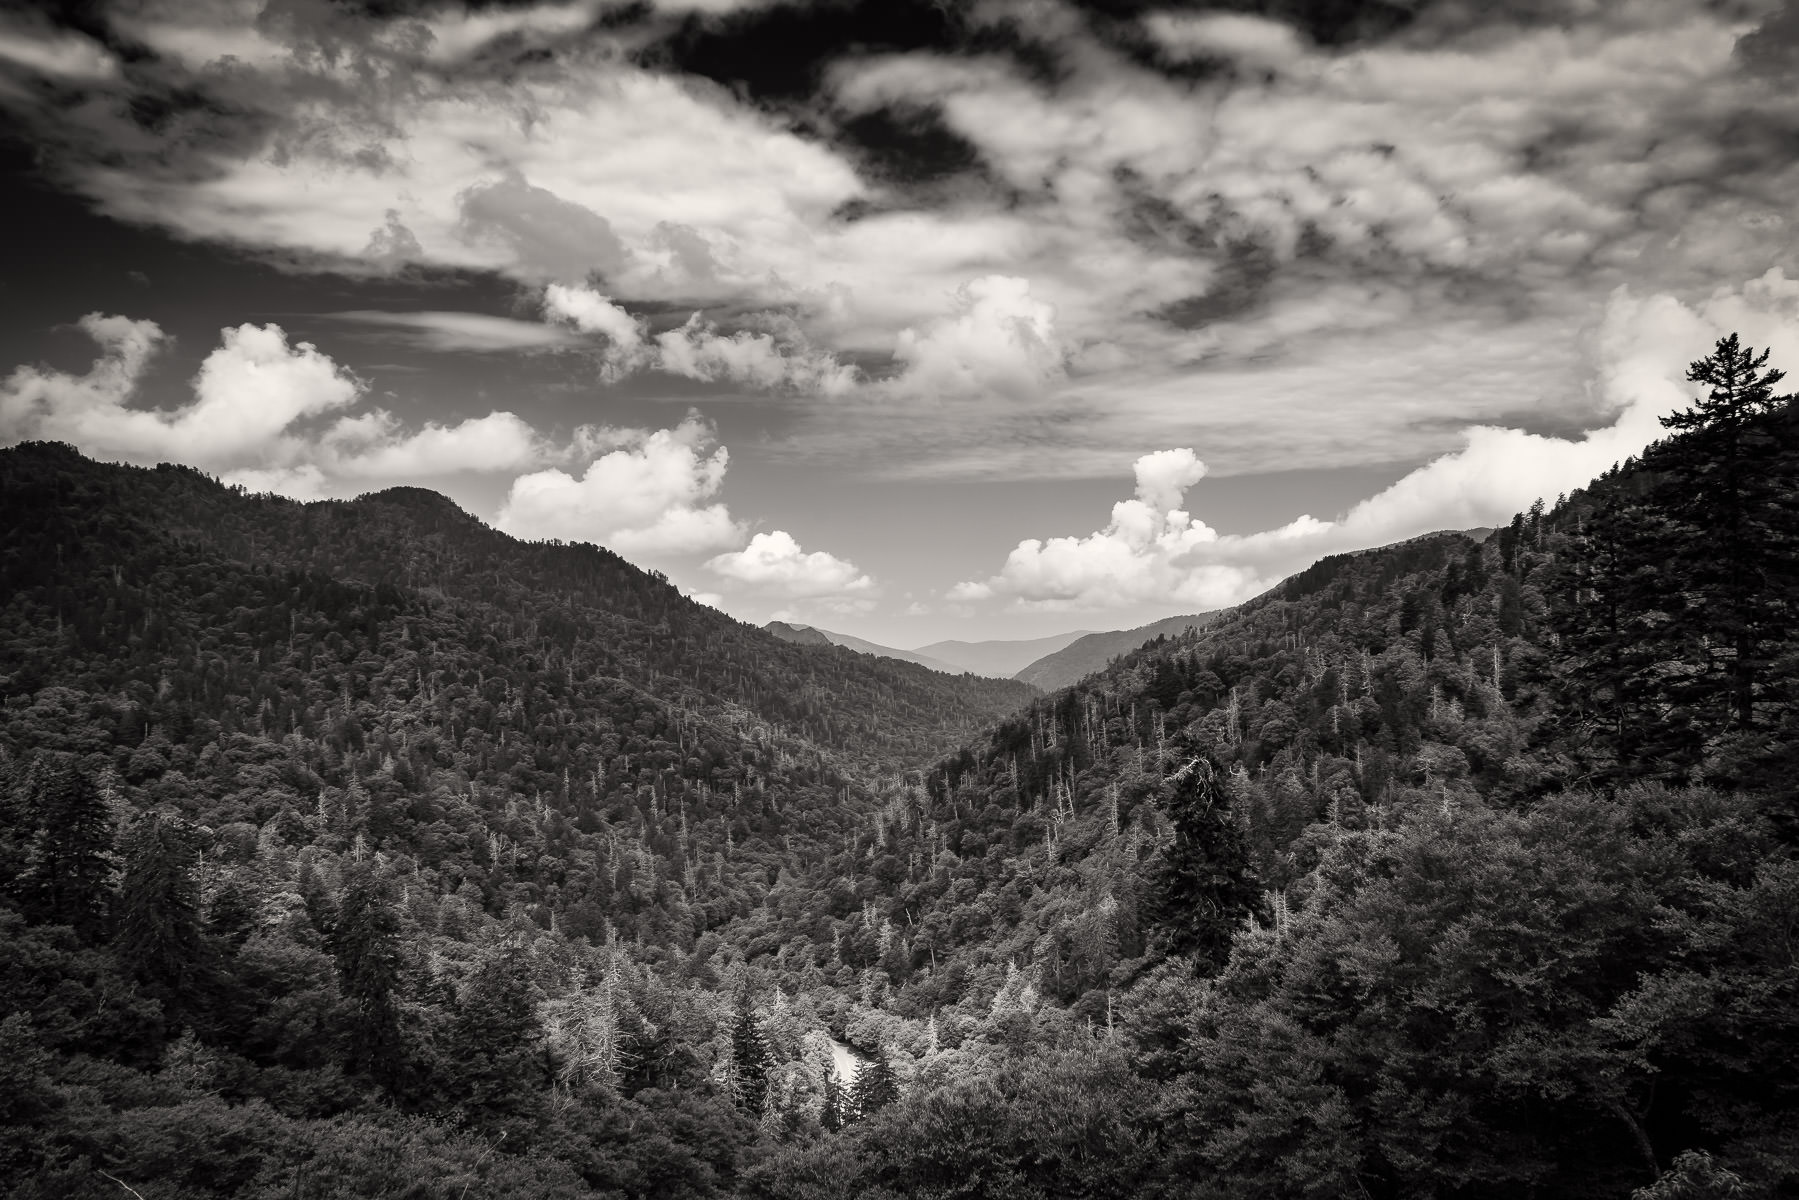 The tree-covered mountains of the Great Smoky Mountains National Park stretch into the distance.